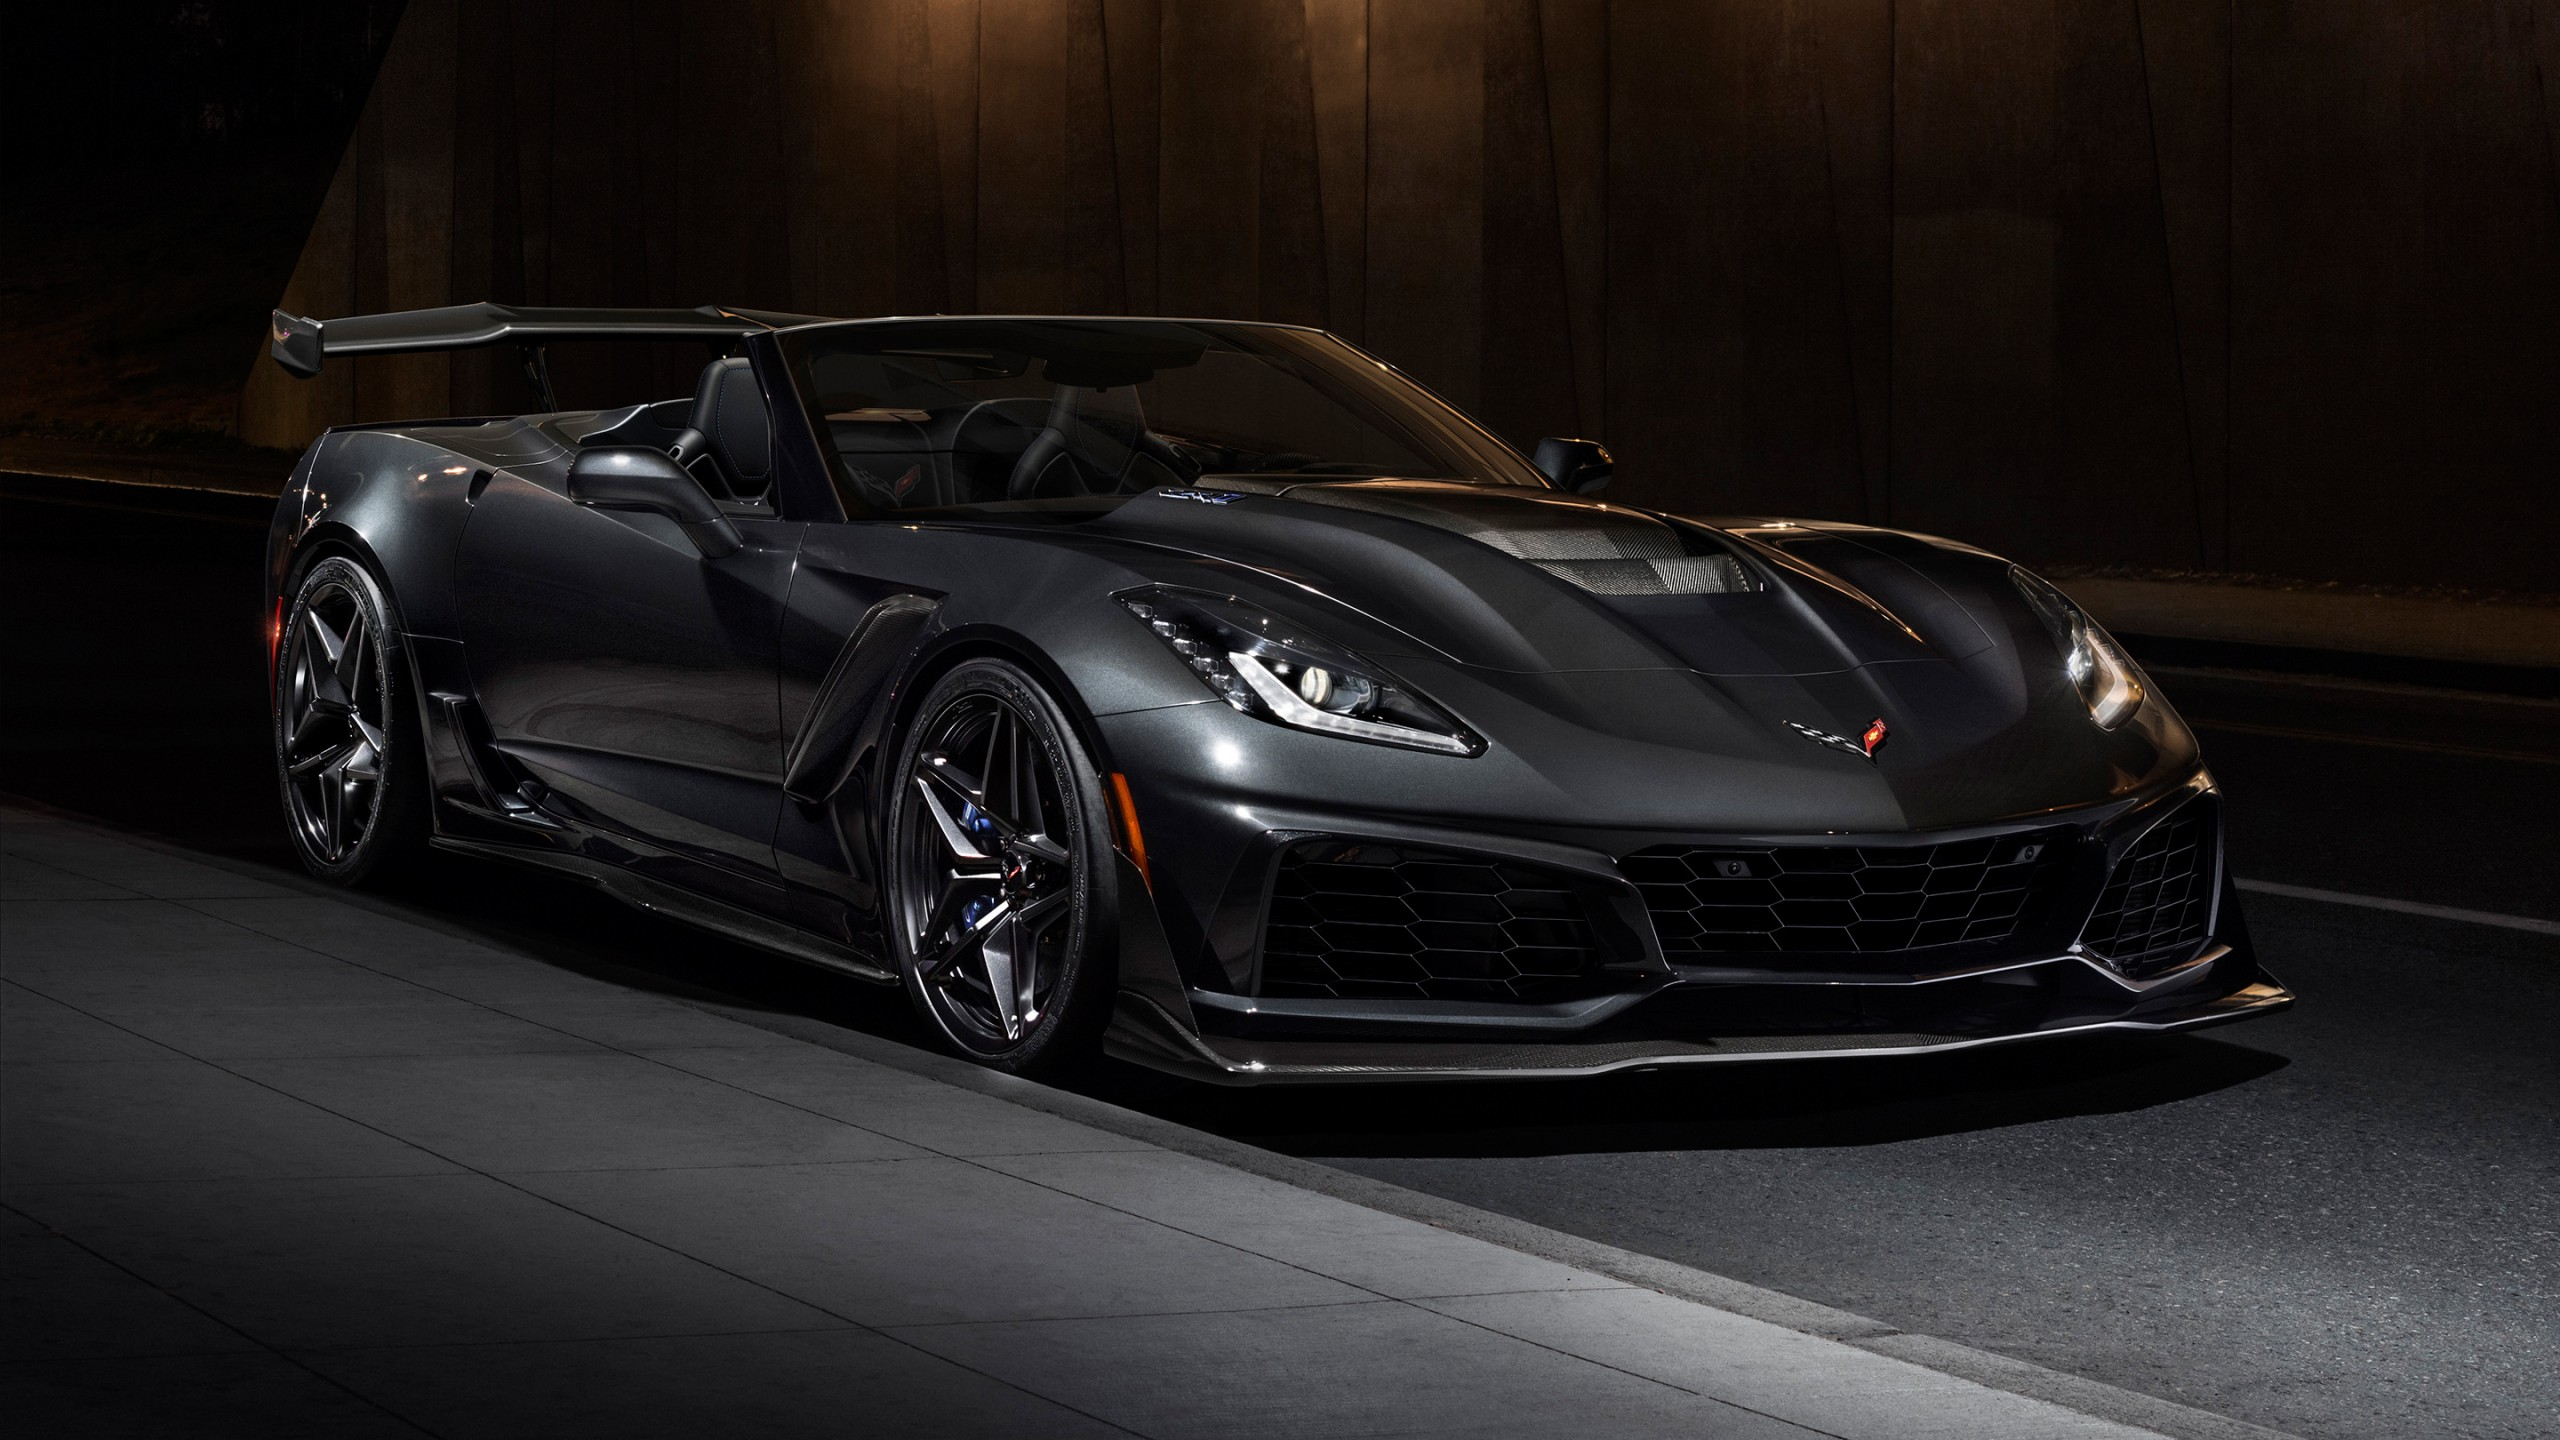 2019 Chevrolet Corvette Zr1 Convertible Wallpaper Hd Car Wallpapers Id 9180